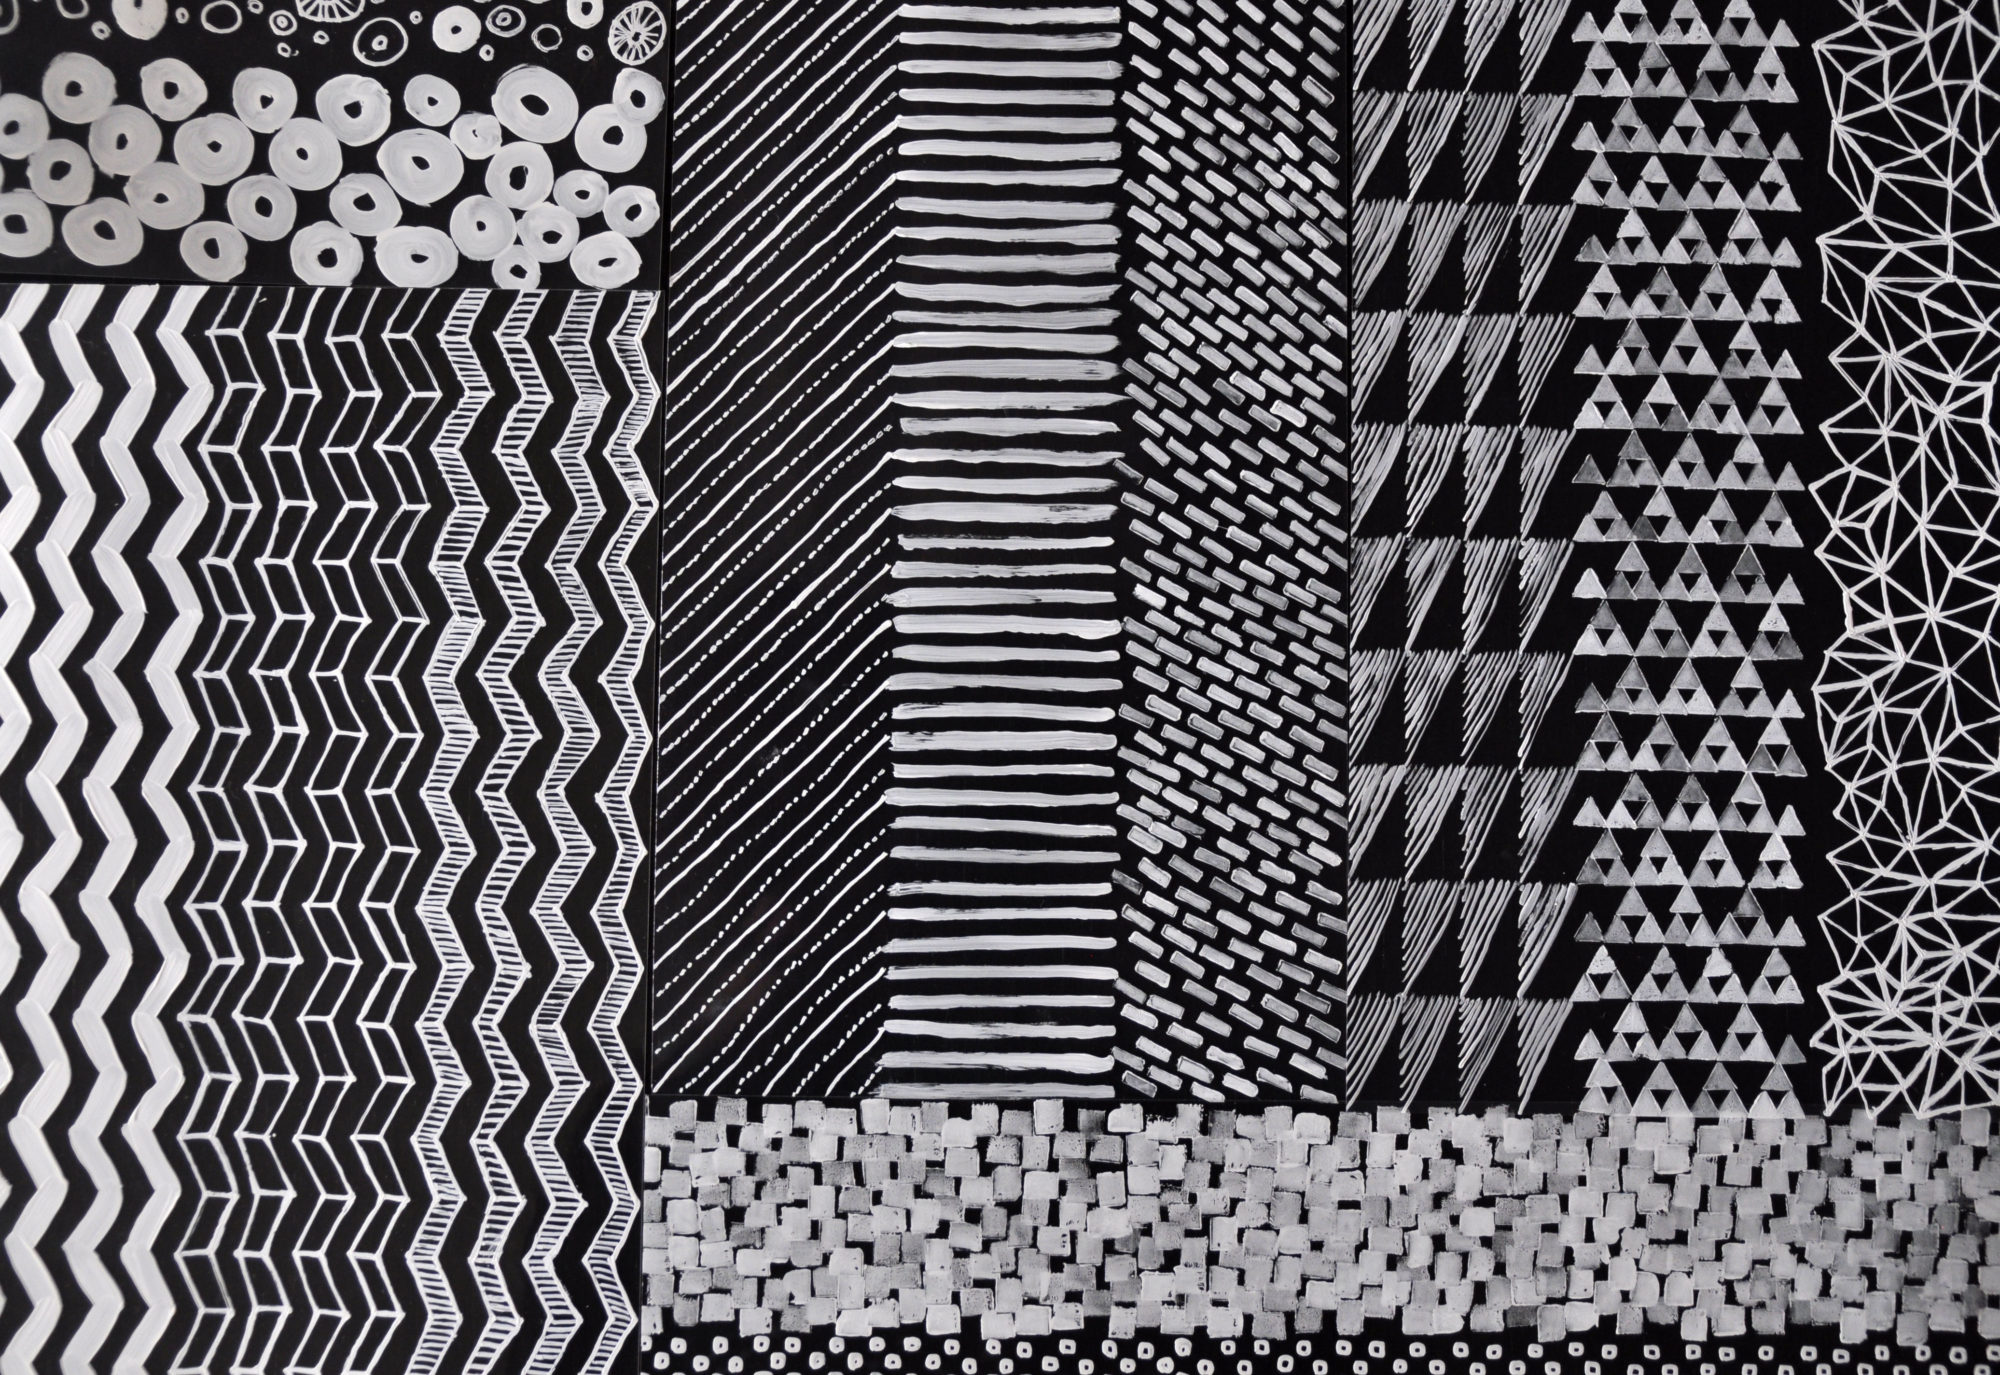 Hand drawn pattern studies